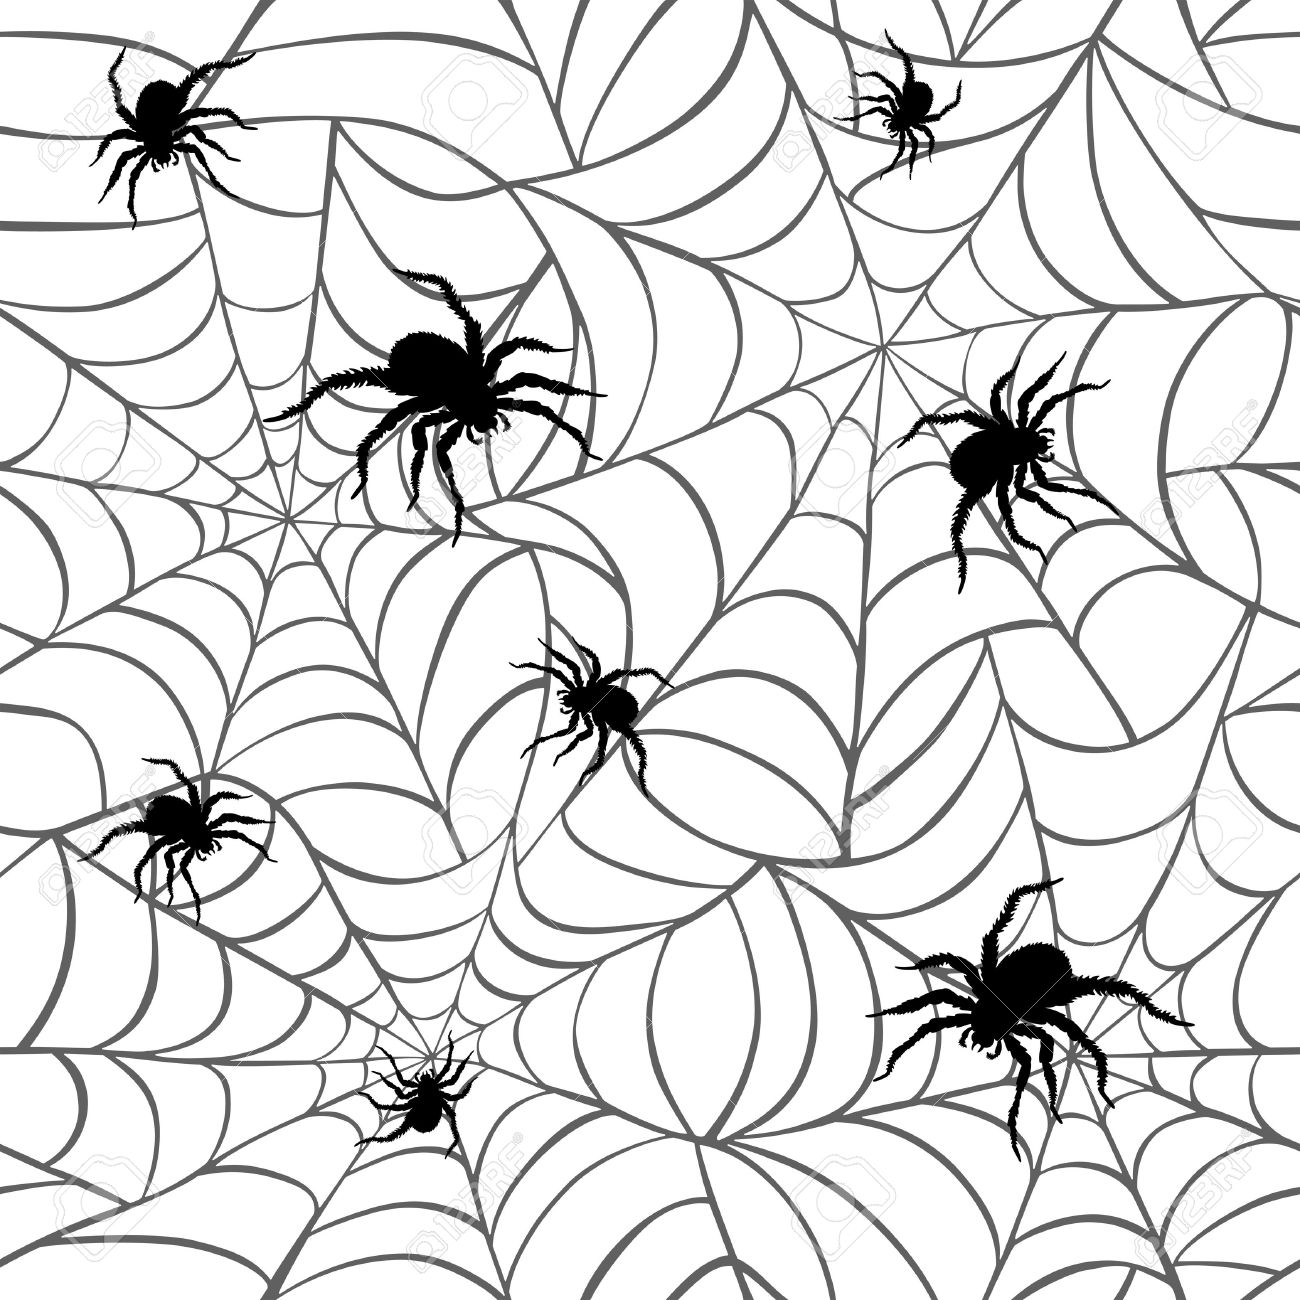 37 965 spider stock vector illustration and royalty free spider